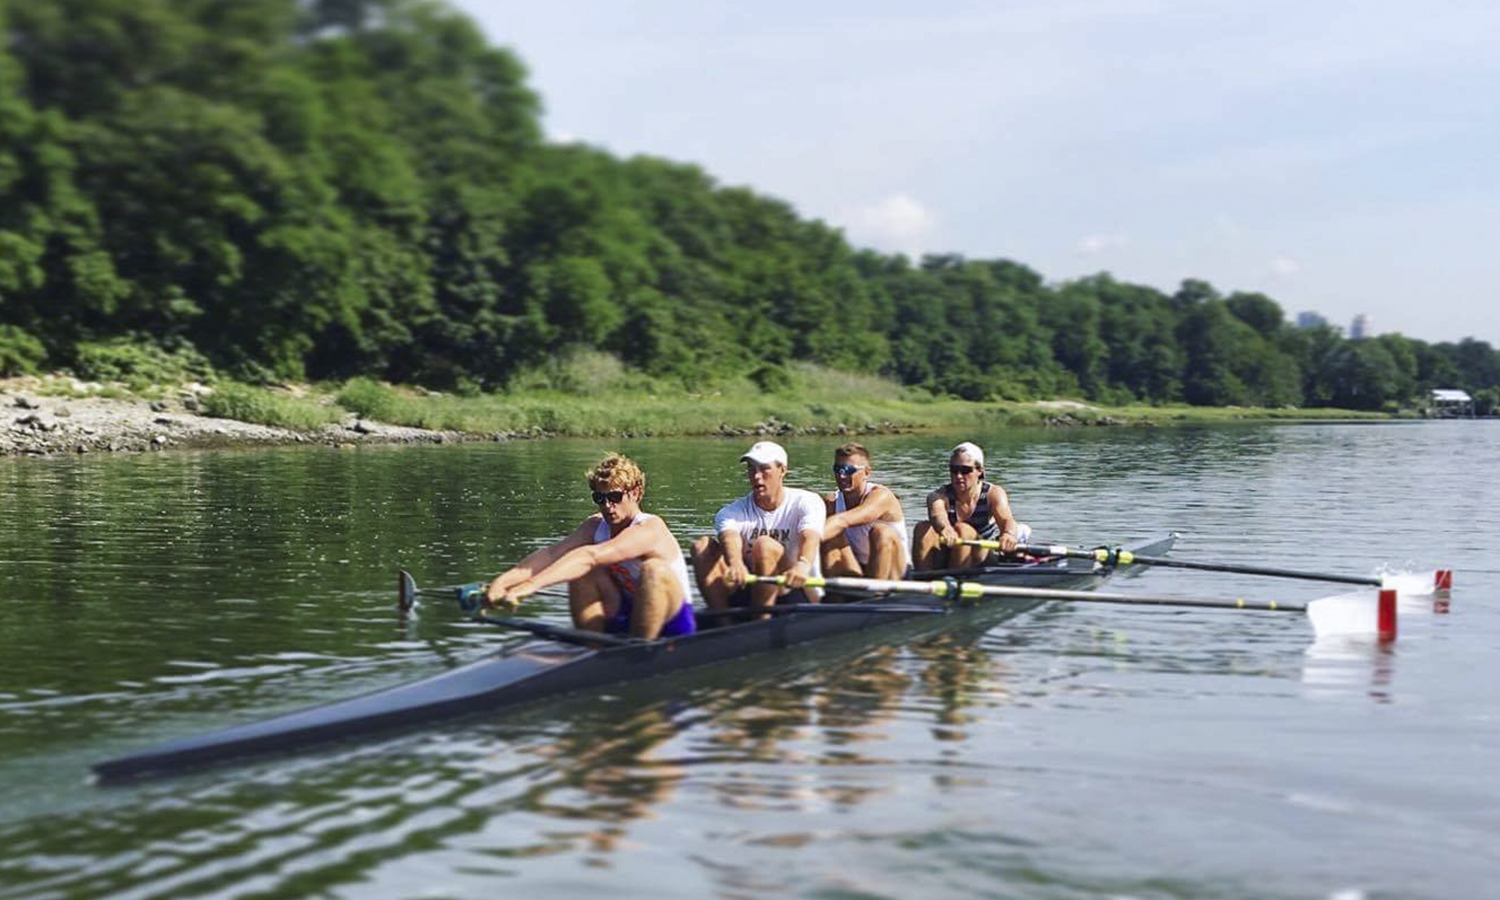 Austin Letorney '17, stroke seat, trains with the New York Athletic Club for the U.S. U23 World Championship Trials. The winner of the trials held July 18-22 will travel to Rotterdam, Netherlands to compete in the World Championships.